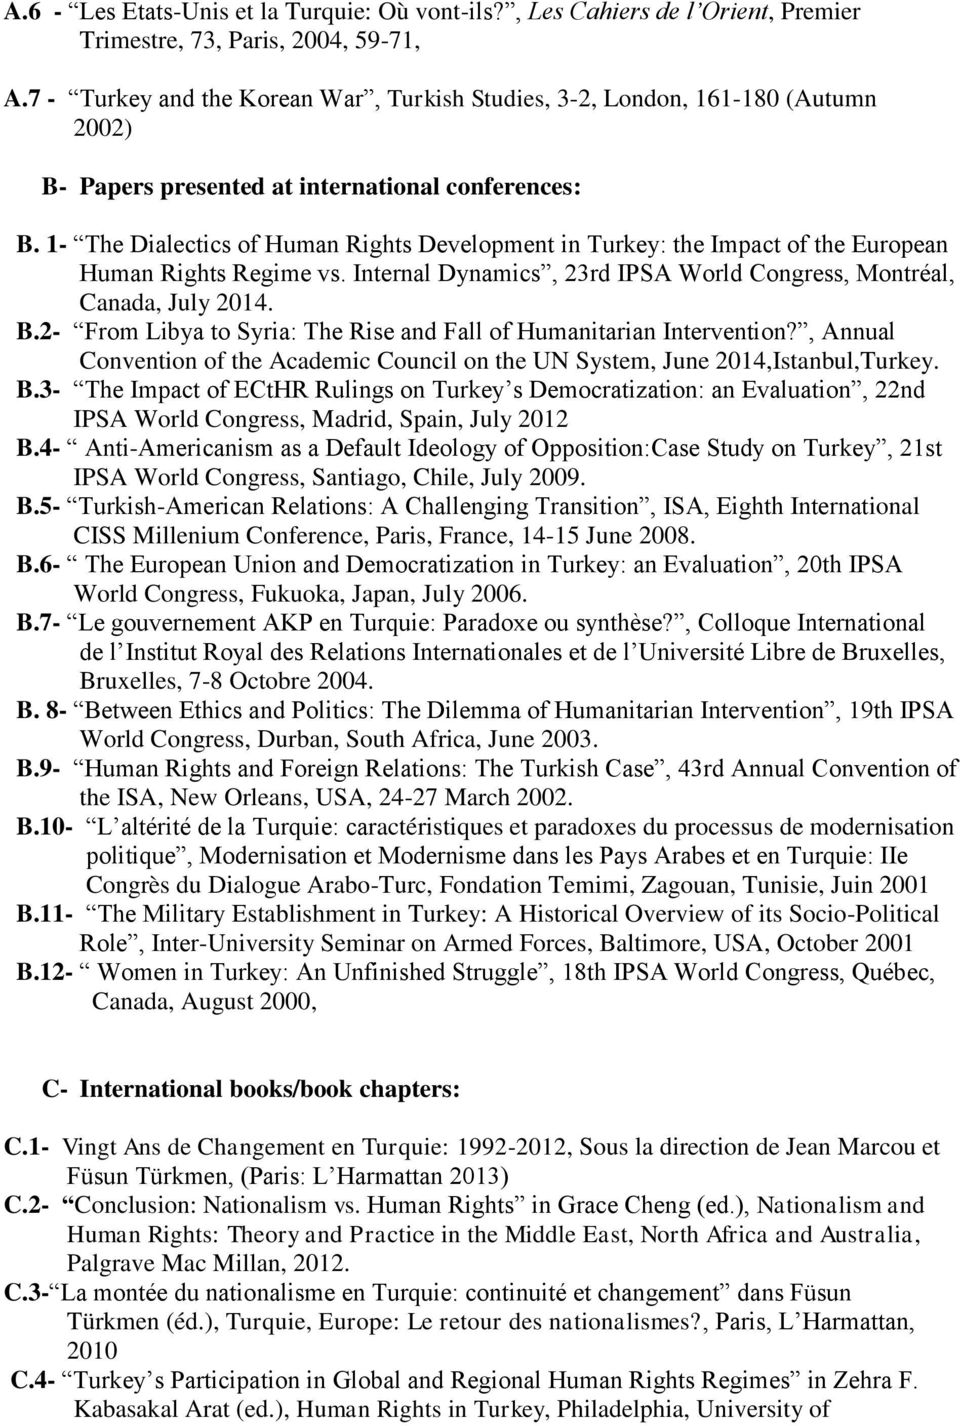 1- The Dialectics of Human Rights Development in Turkey: the Impact of the European Human Rights Regime vs. Internal Dynamics, 23rd IPSA World Congress, Montréal, Canada, July 2014. B.